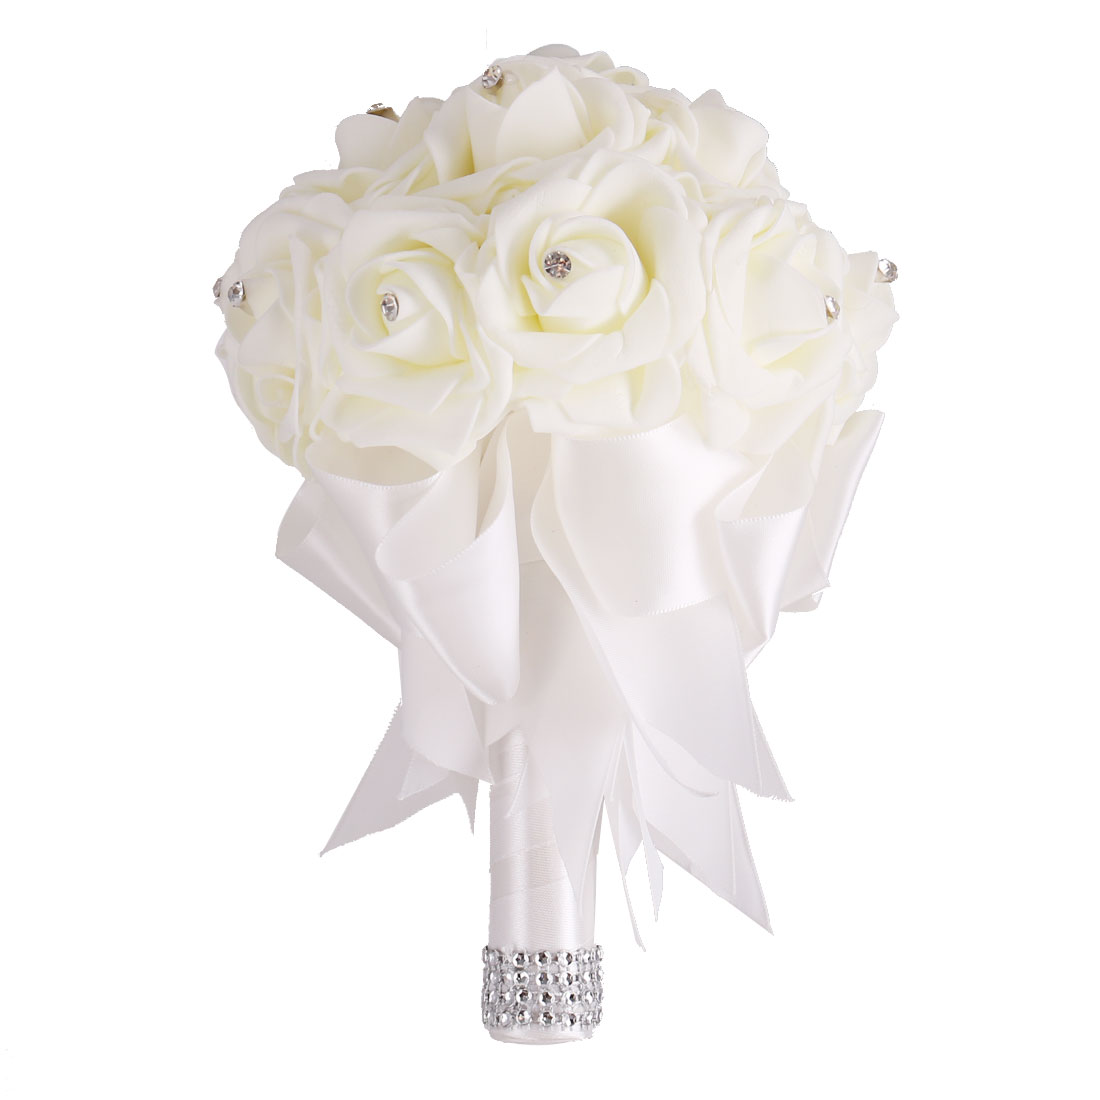 Wedding Globular Ribbon Decor Bridal Artificial Flower Handhold Bouquet White